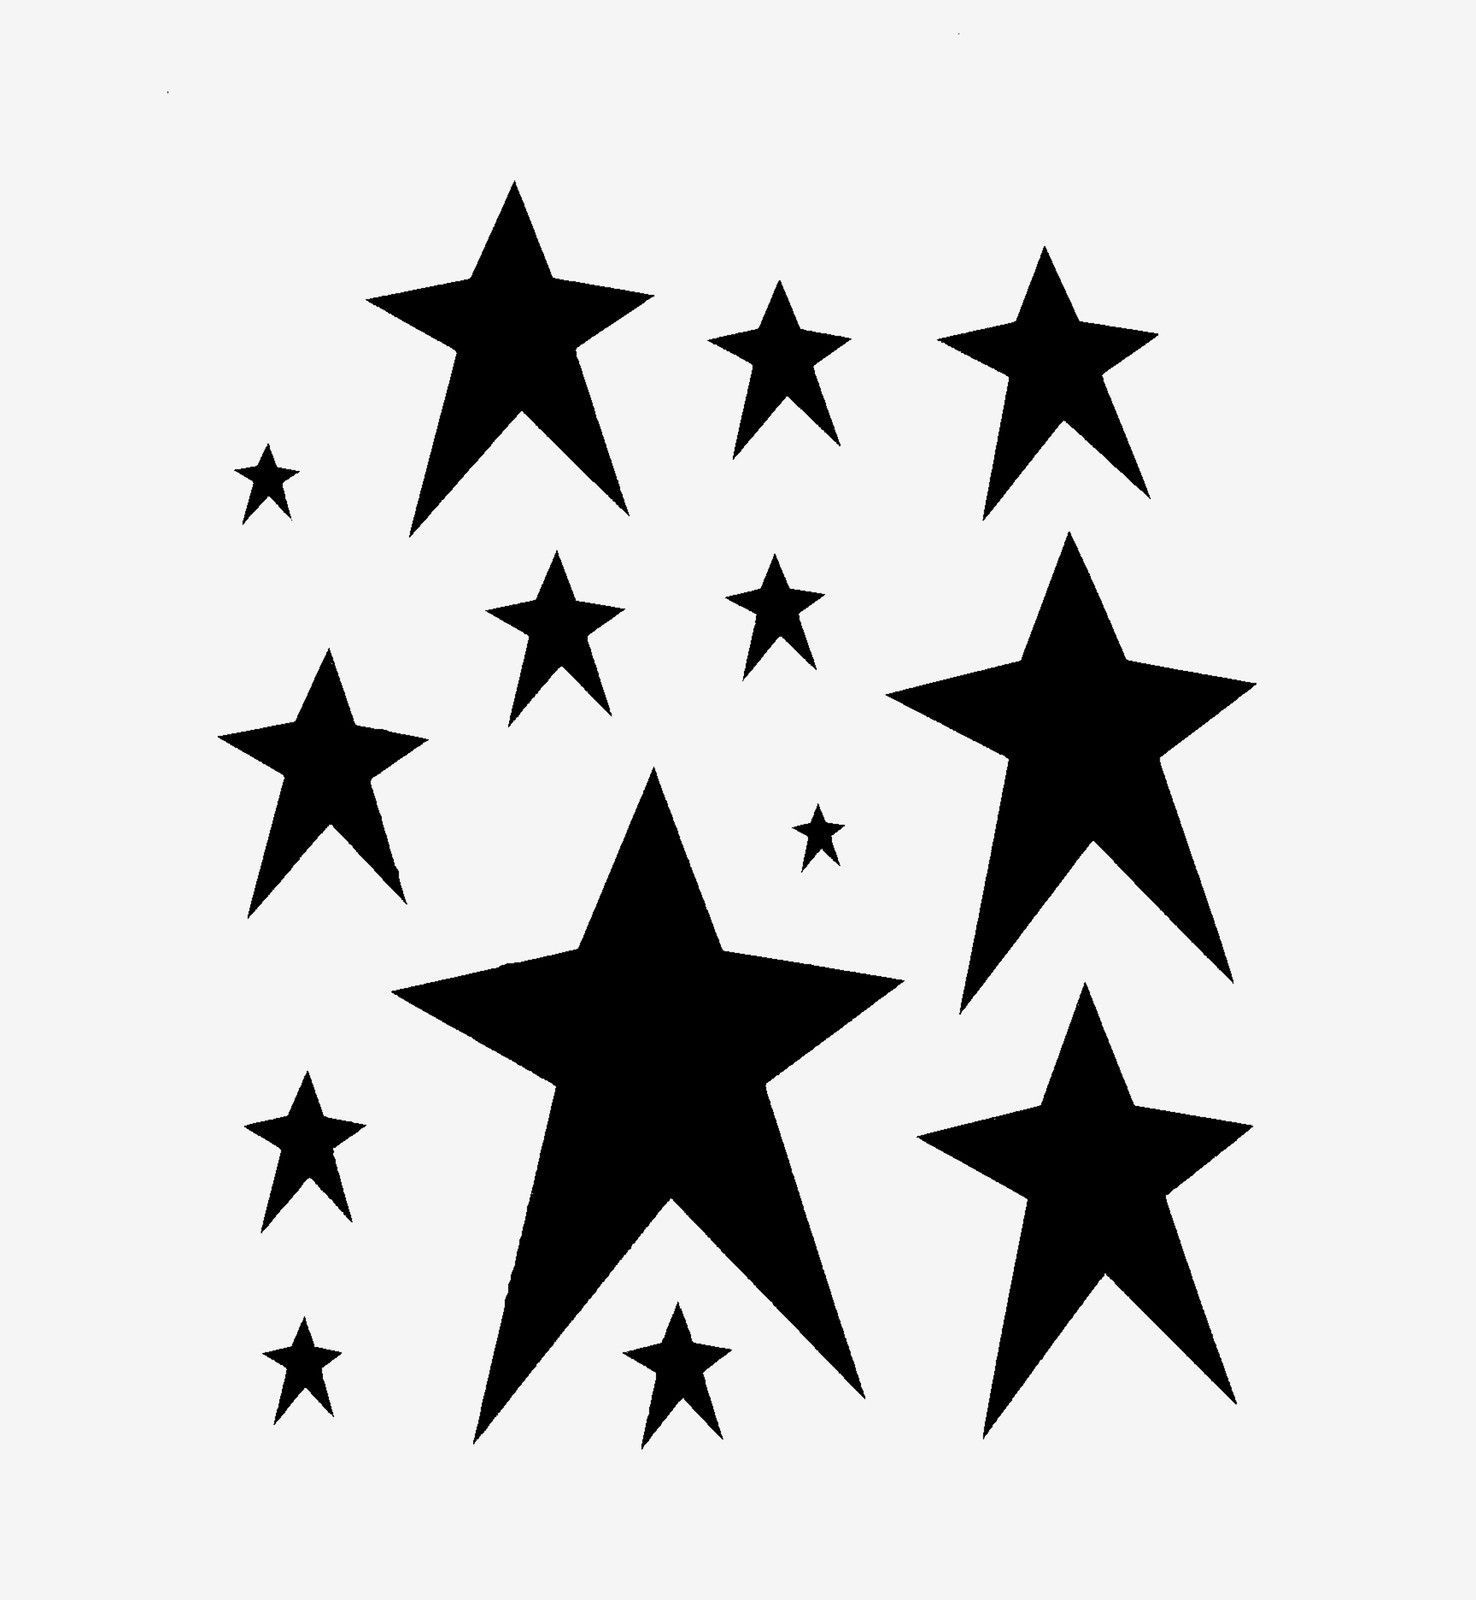 Star primative clipart clipart royalty free library Primitive star clipart 8 » Clipart Portal clipart royalty free library